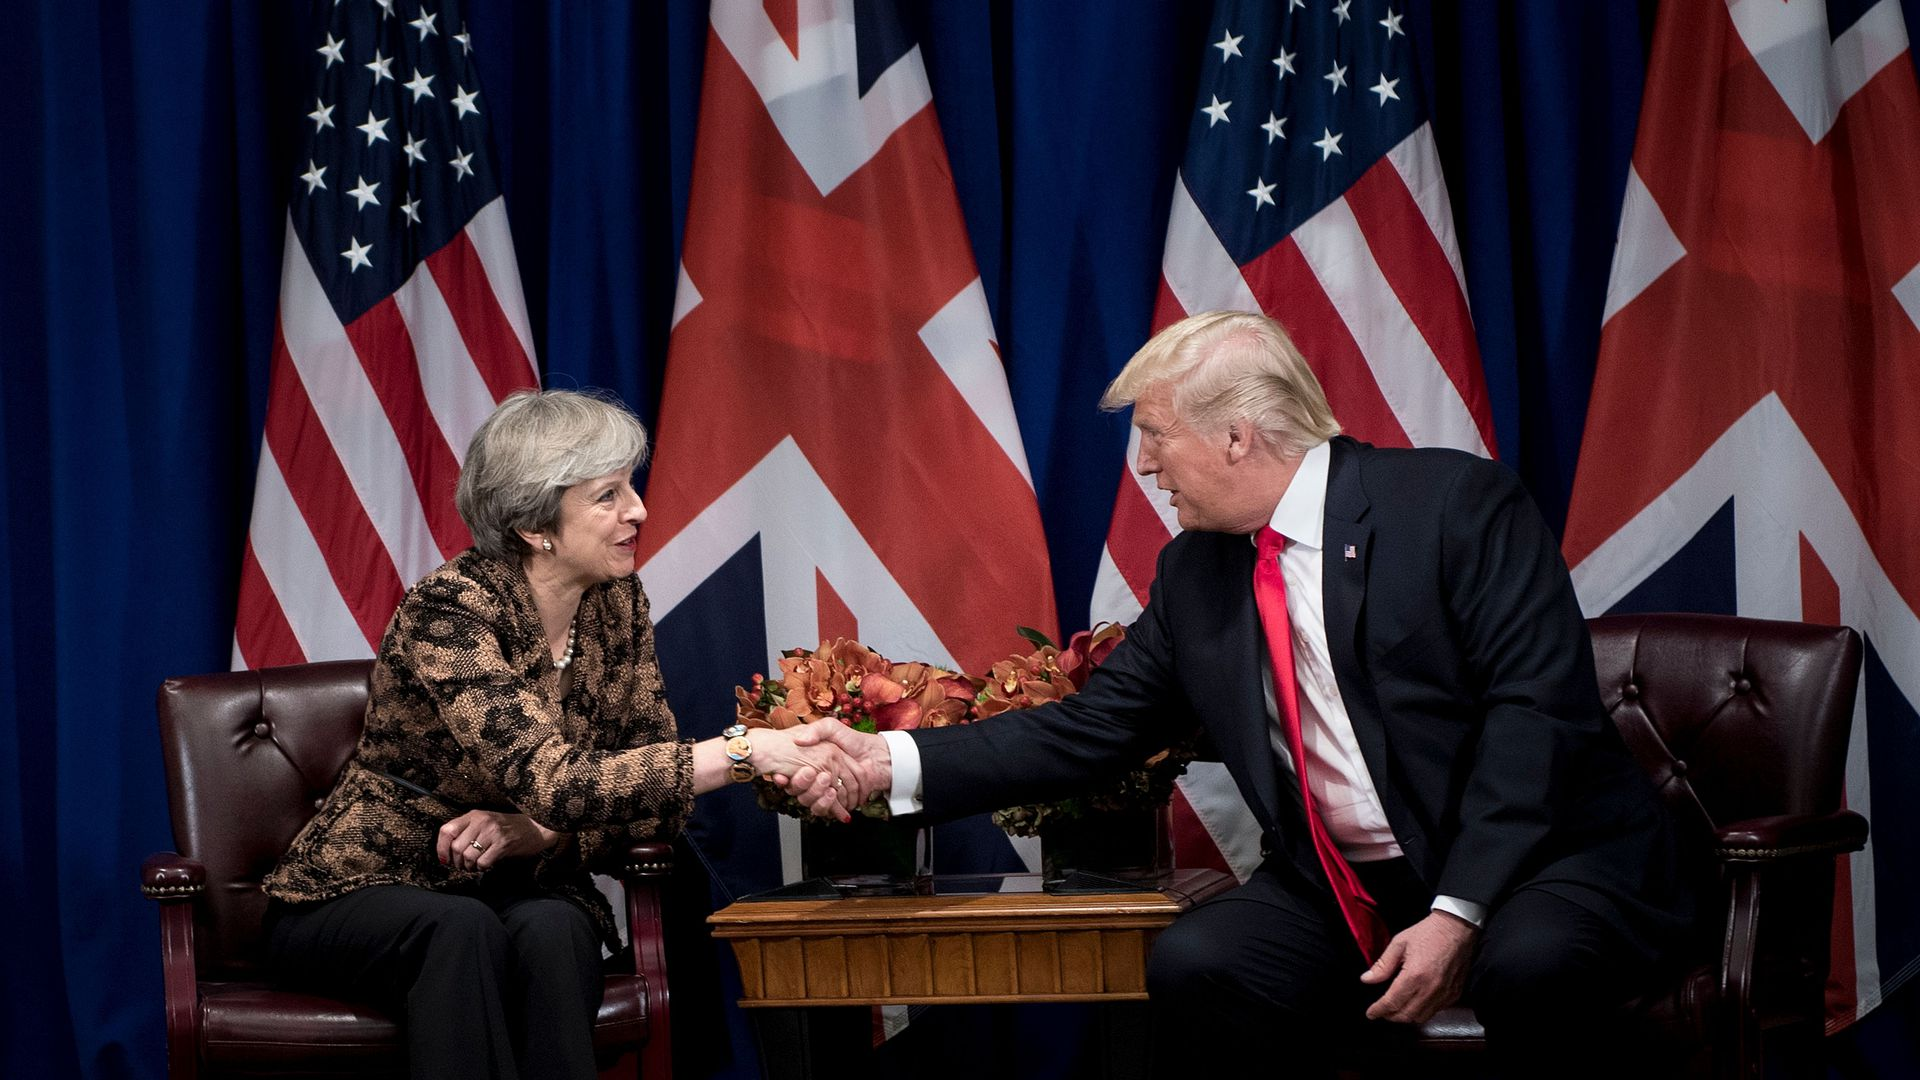 Theresa May and Donald Trump shaking hands.